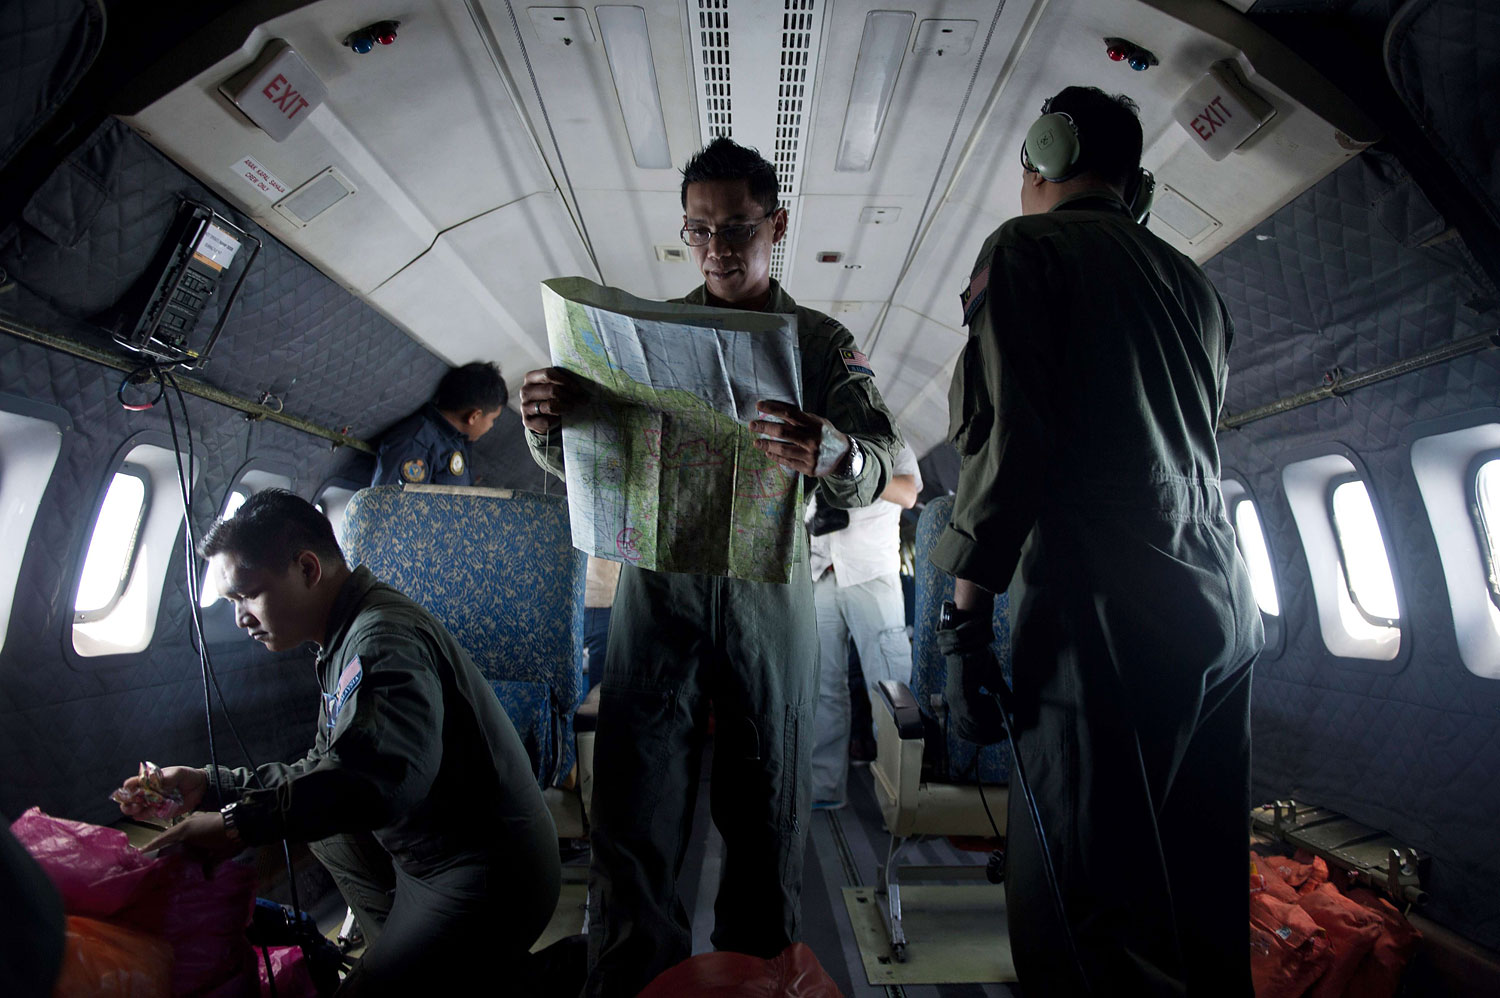 A Royal Malaysian Air Force Navigator captain, Izam Fareq Hassan, center, looks at a map onboard a Malaysian Air Force CN235 aircraft during a search and rescue (SAR) operation to find the missing Malaysia Airlines flight MH370 plane over the Strait of Malacca on March 14, 2014.